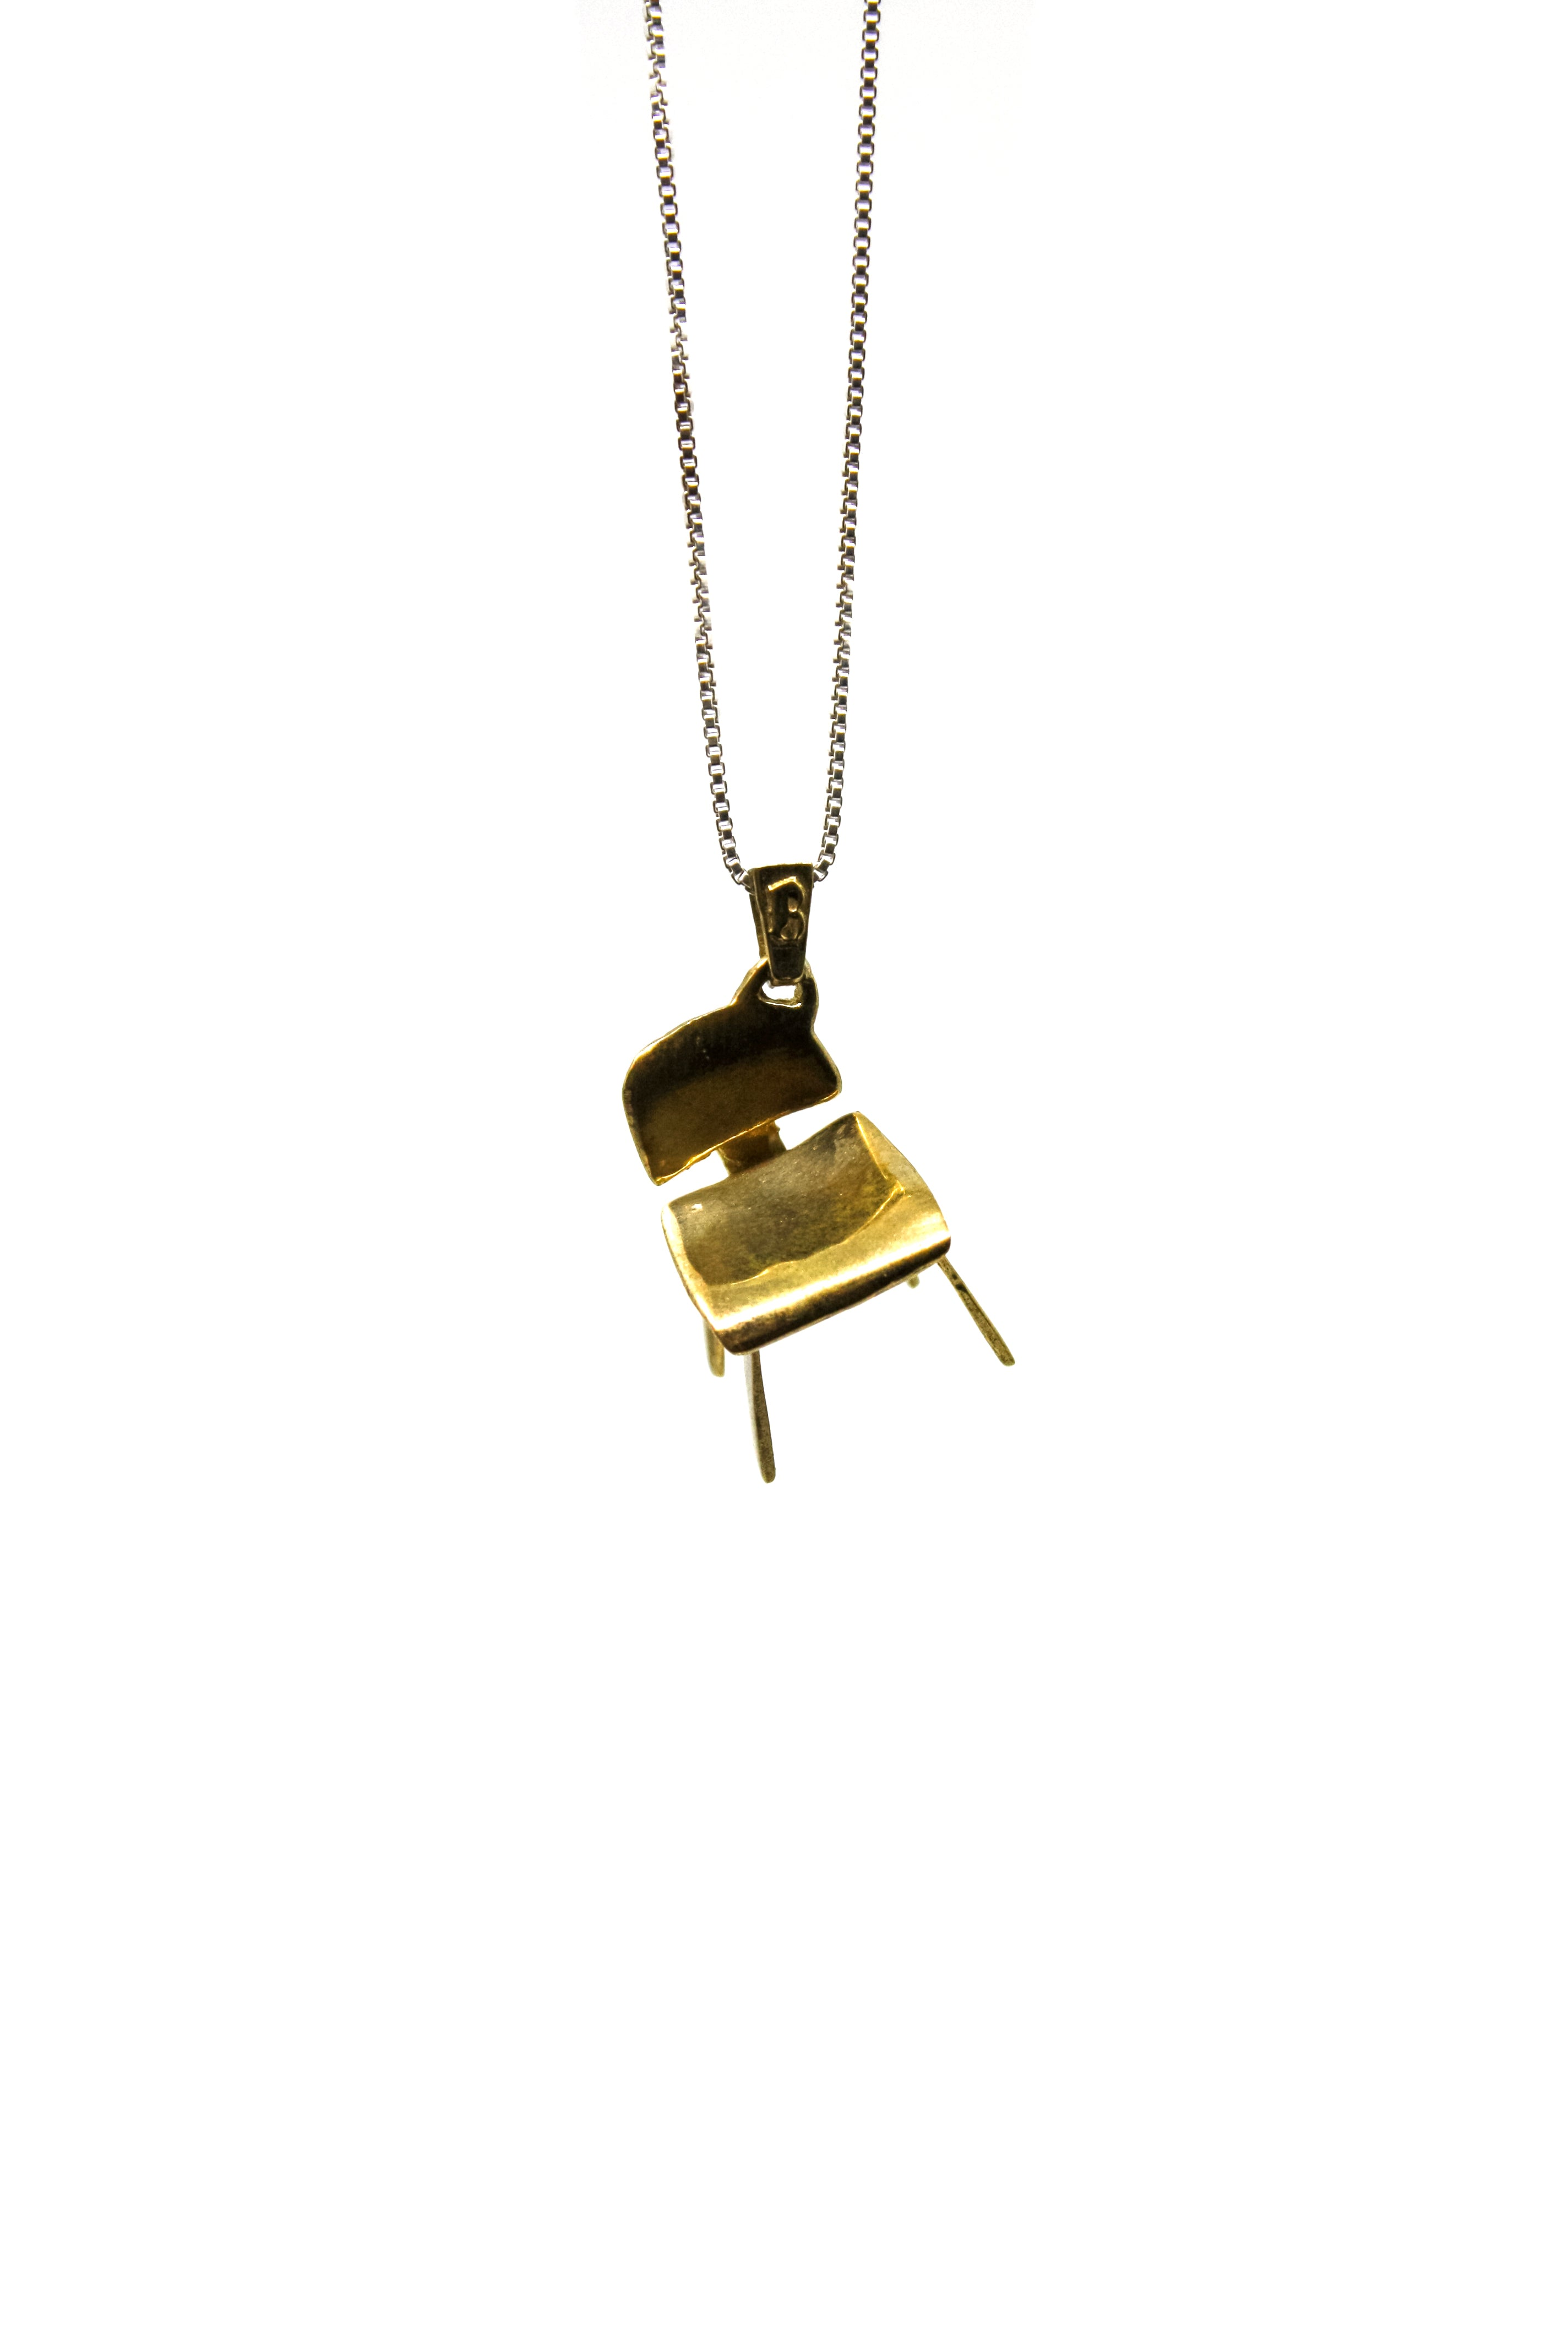 Bruxe_jewerly_TinyLittleChairs_Bent_Bronze